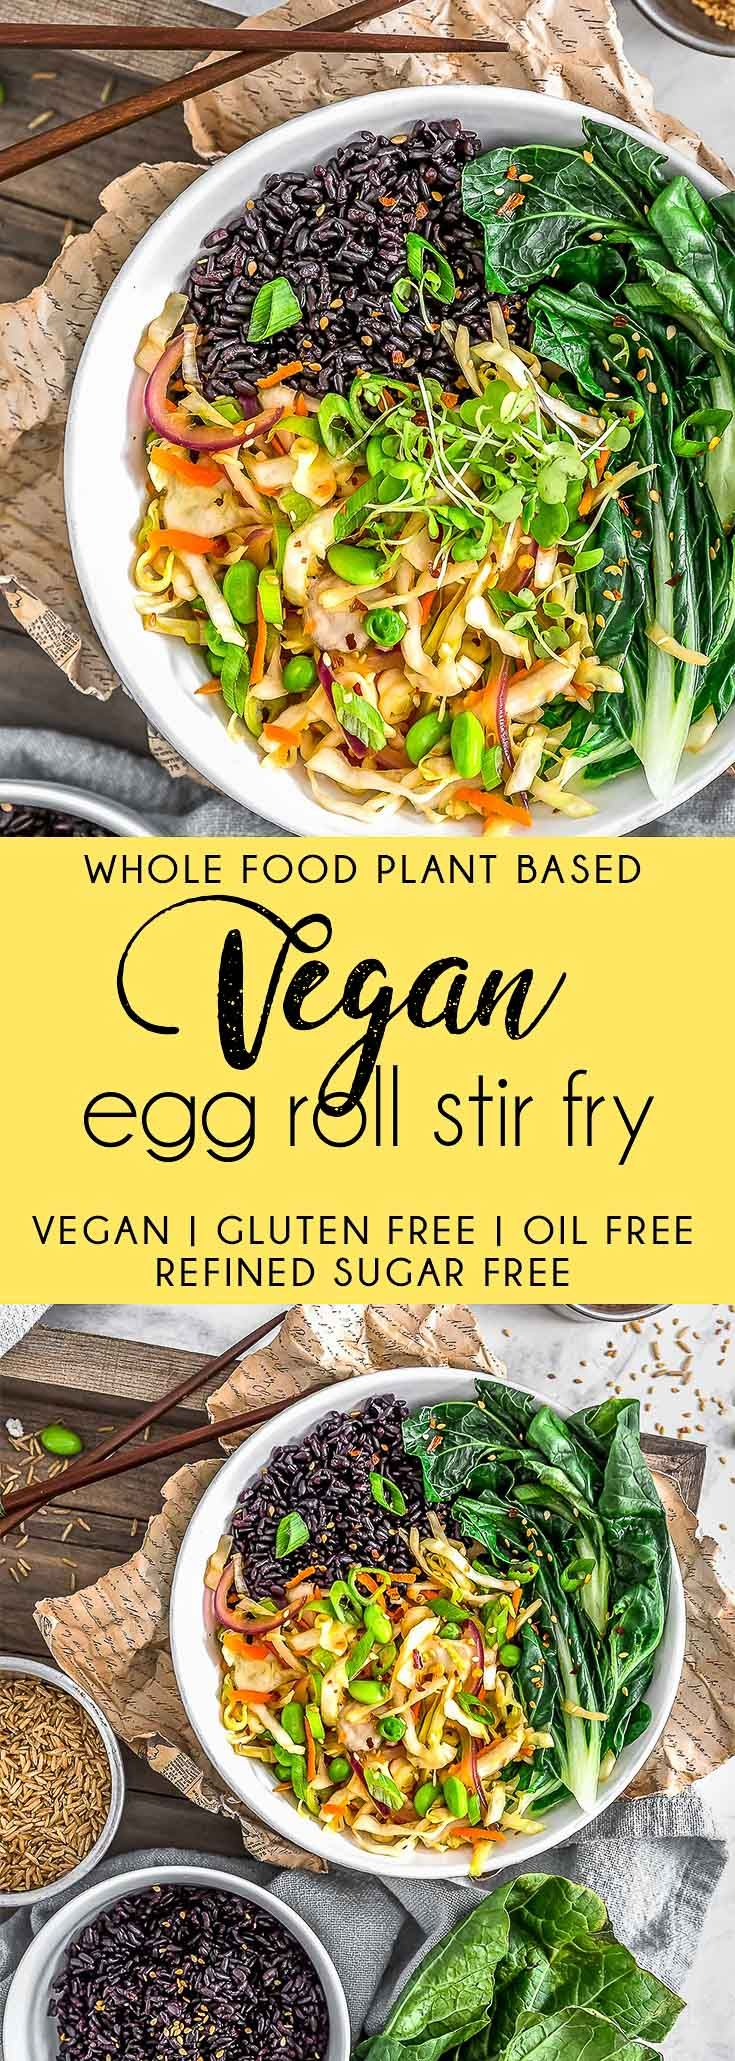 Vegan Egg Roll Stir Fry - Monkey and Me Kitchen Adventures